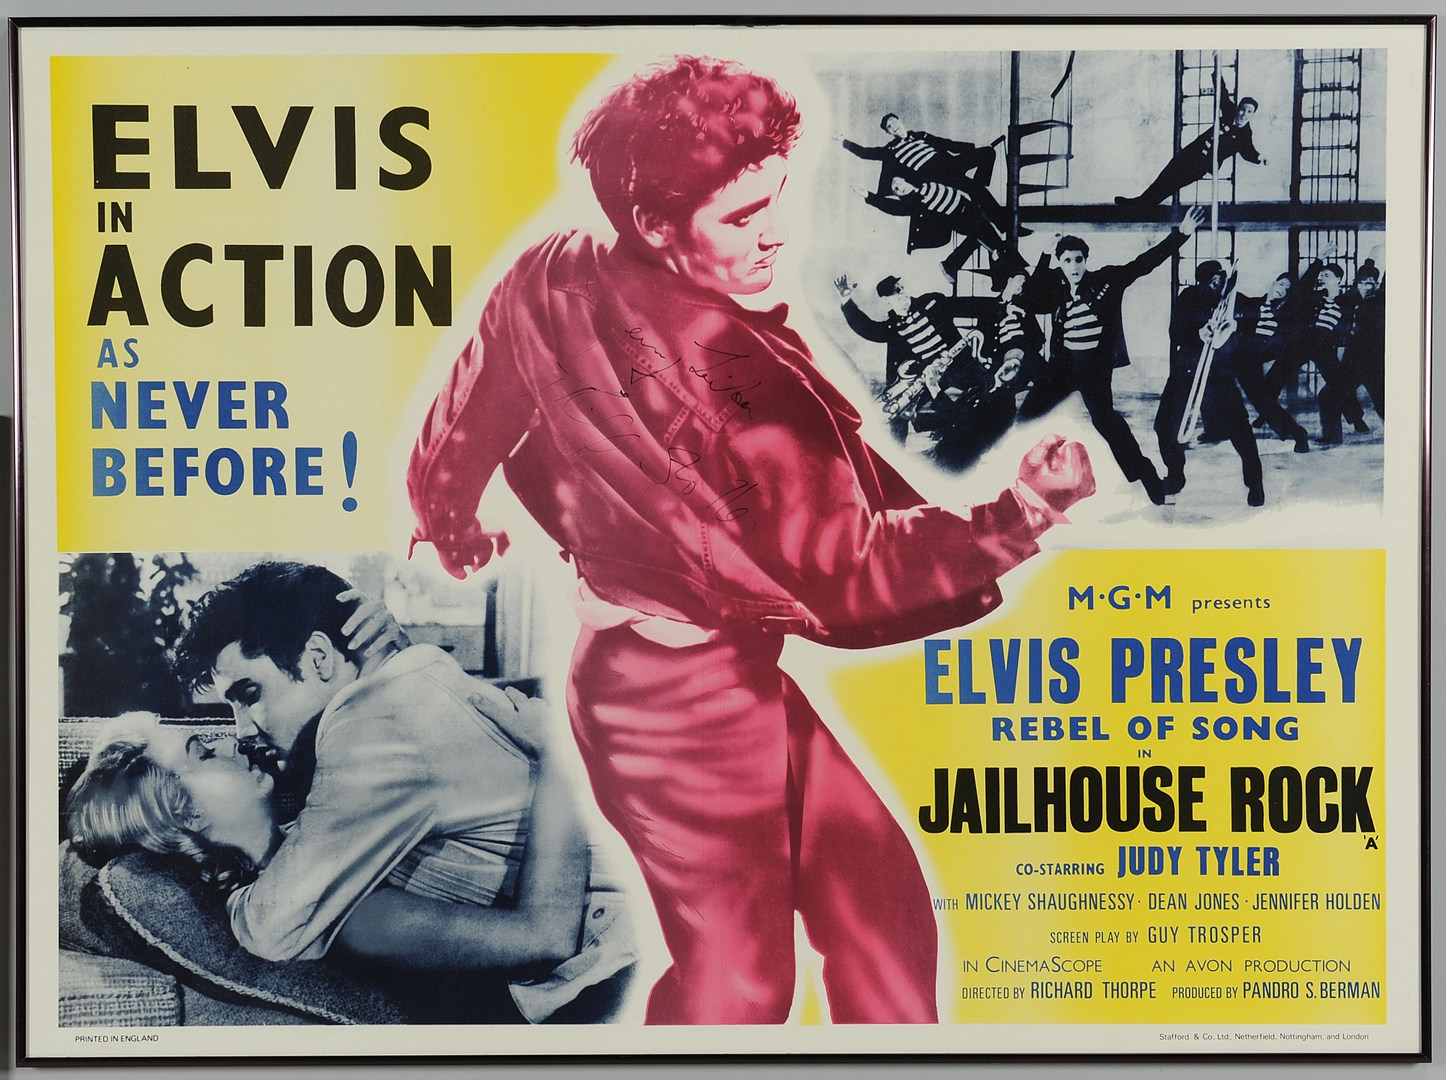 Lot 595: Elvis Presley Related Archive, Posters & Music